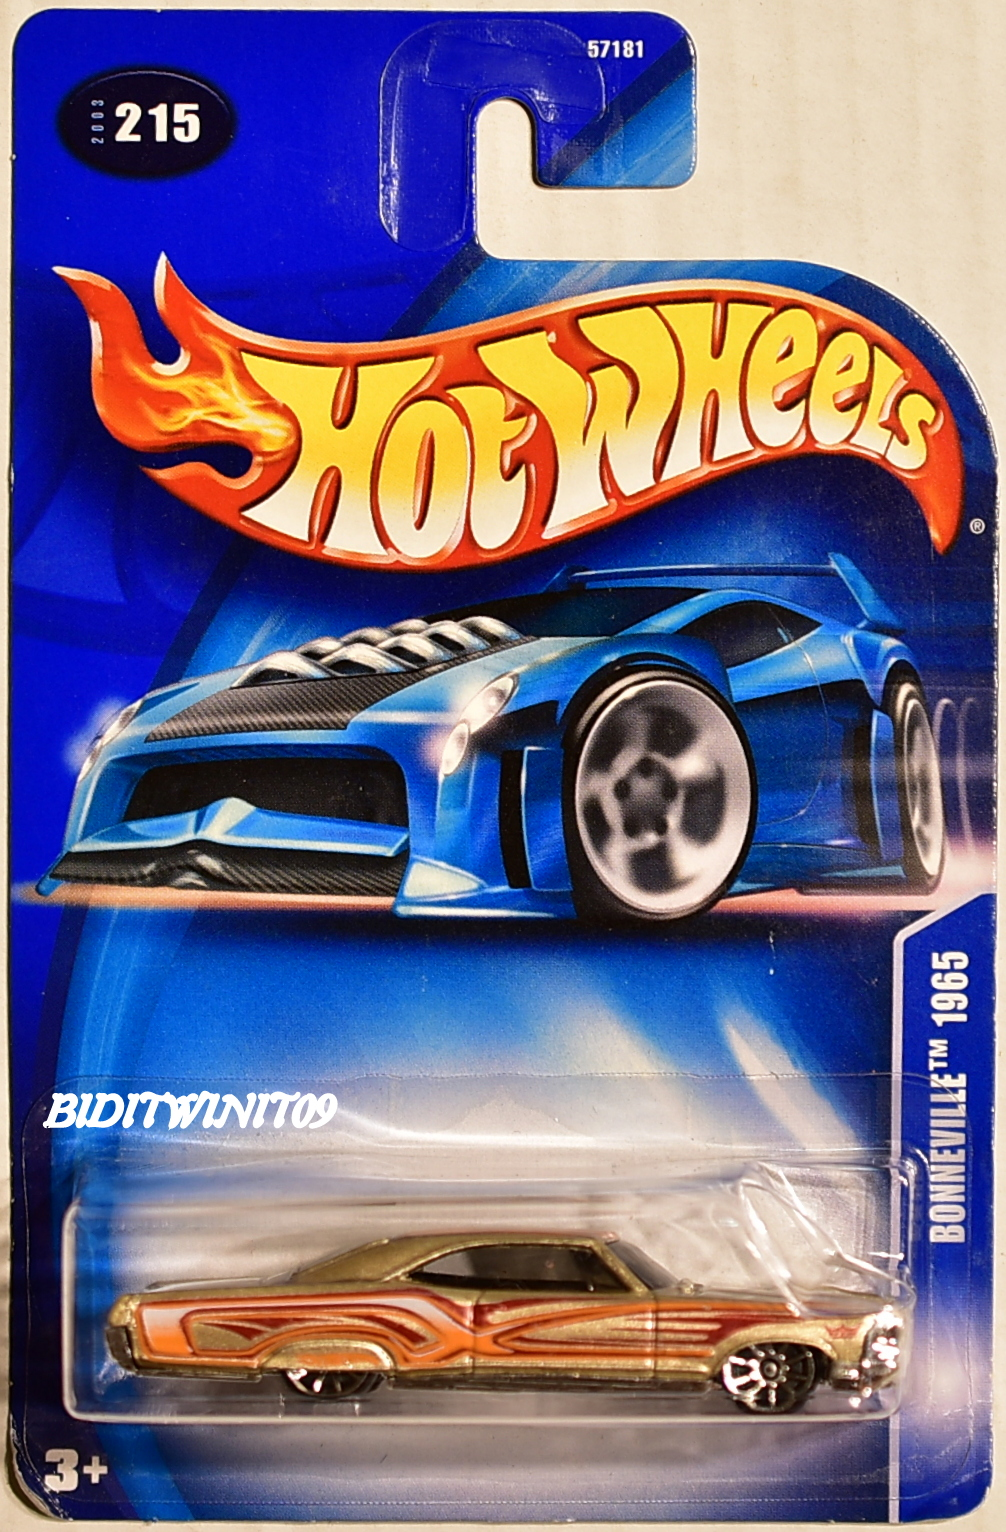 HOT WHEELS 2003 PONTIAC BONNEVILLE 1965 #215